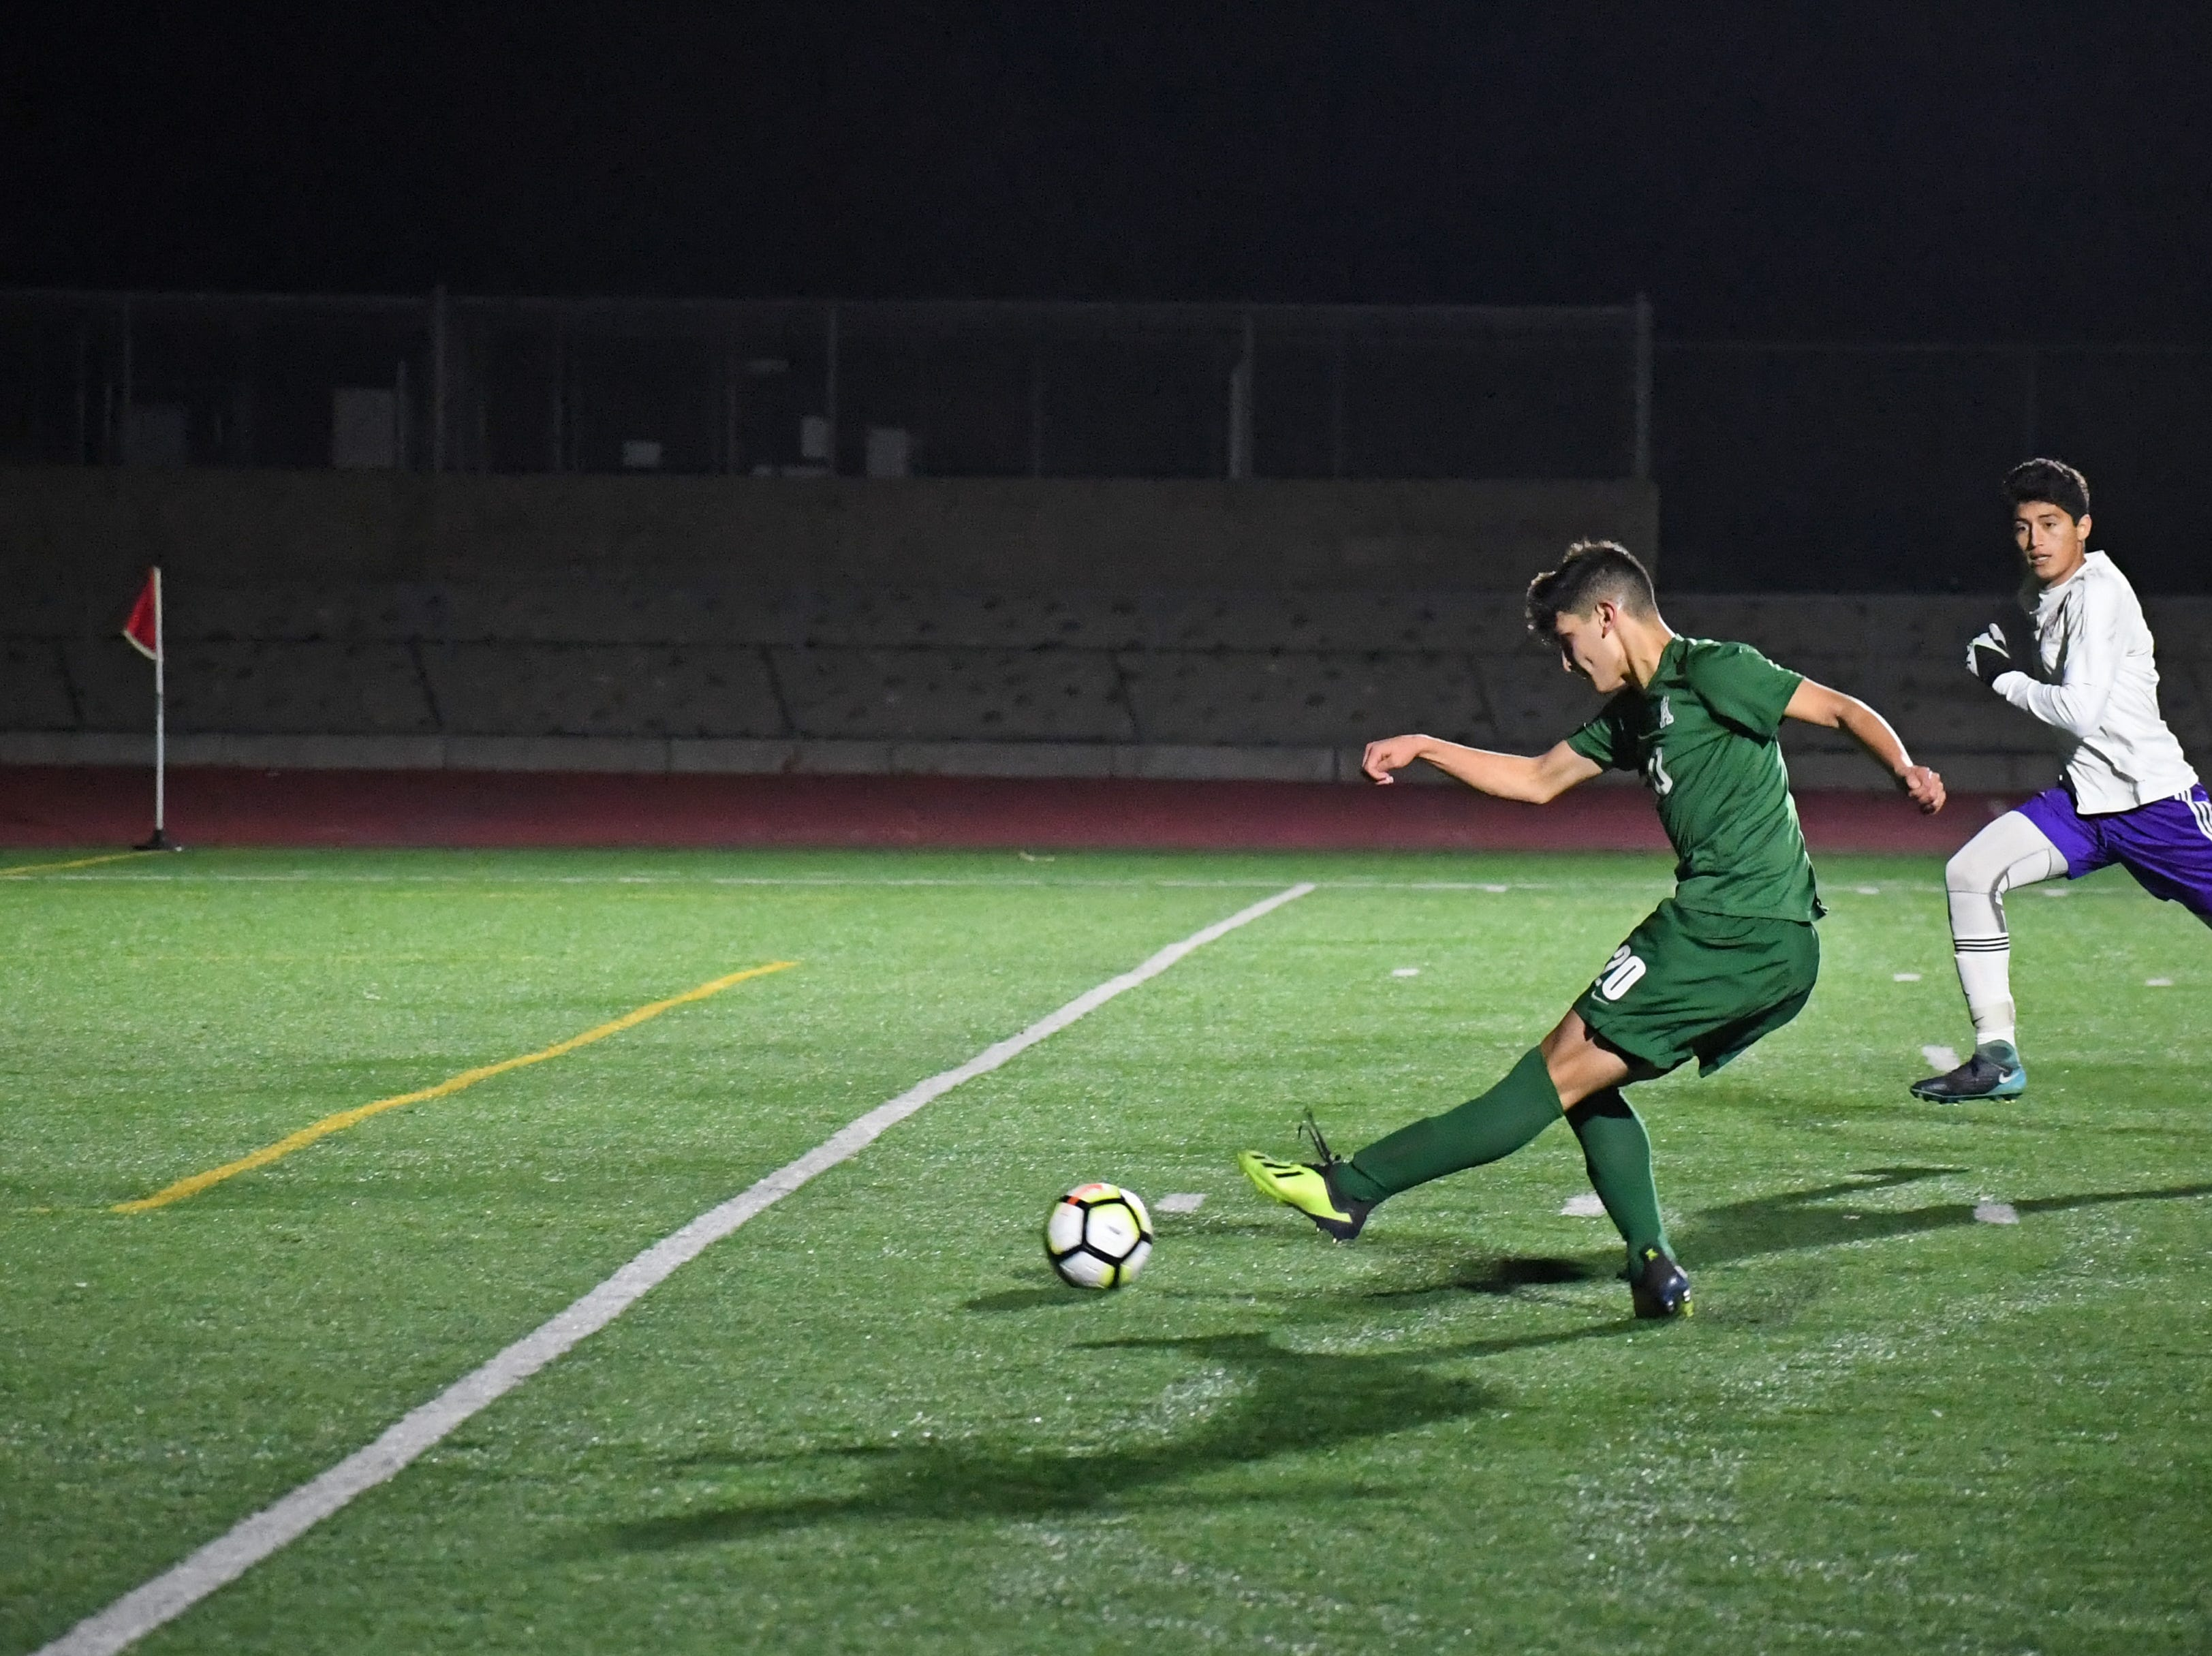 Alisal midfielder Abraham Montaño (20) fires the ball to the far corner of the goal.